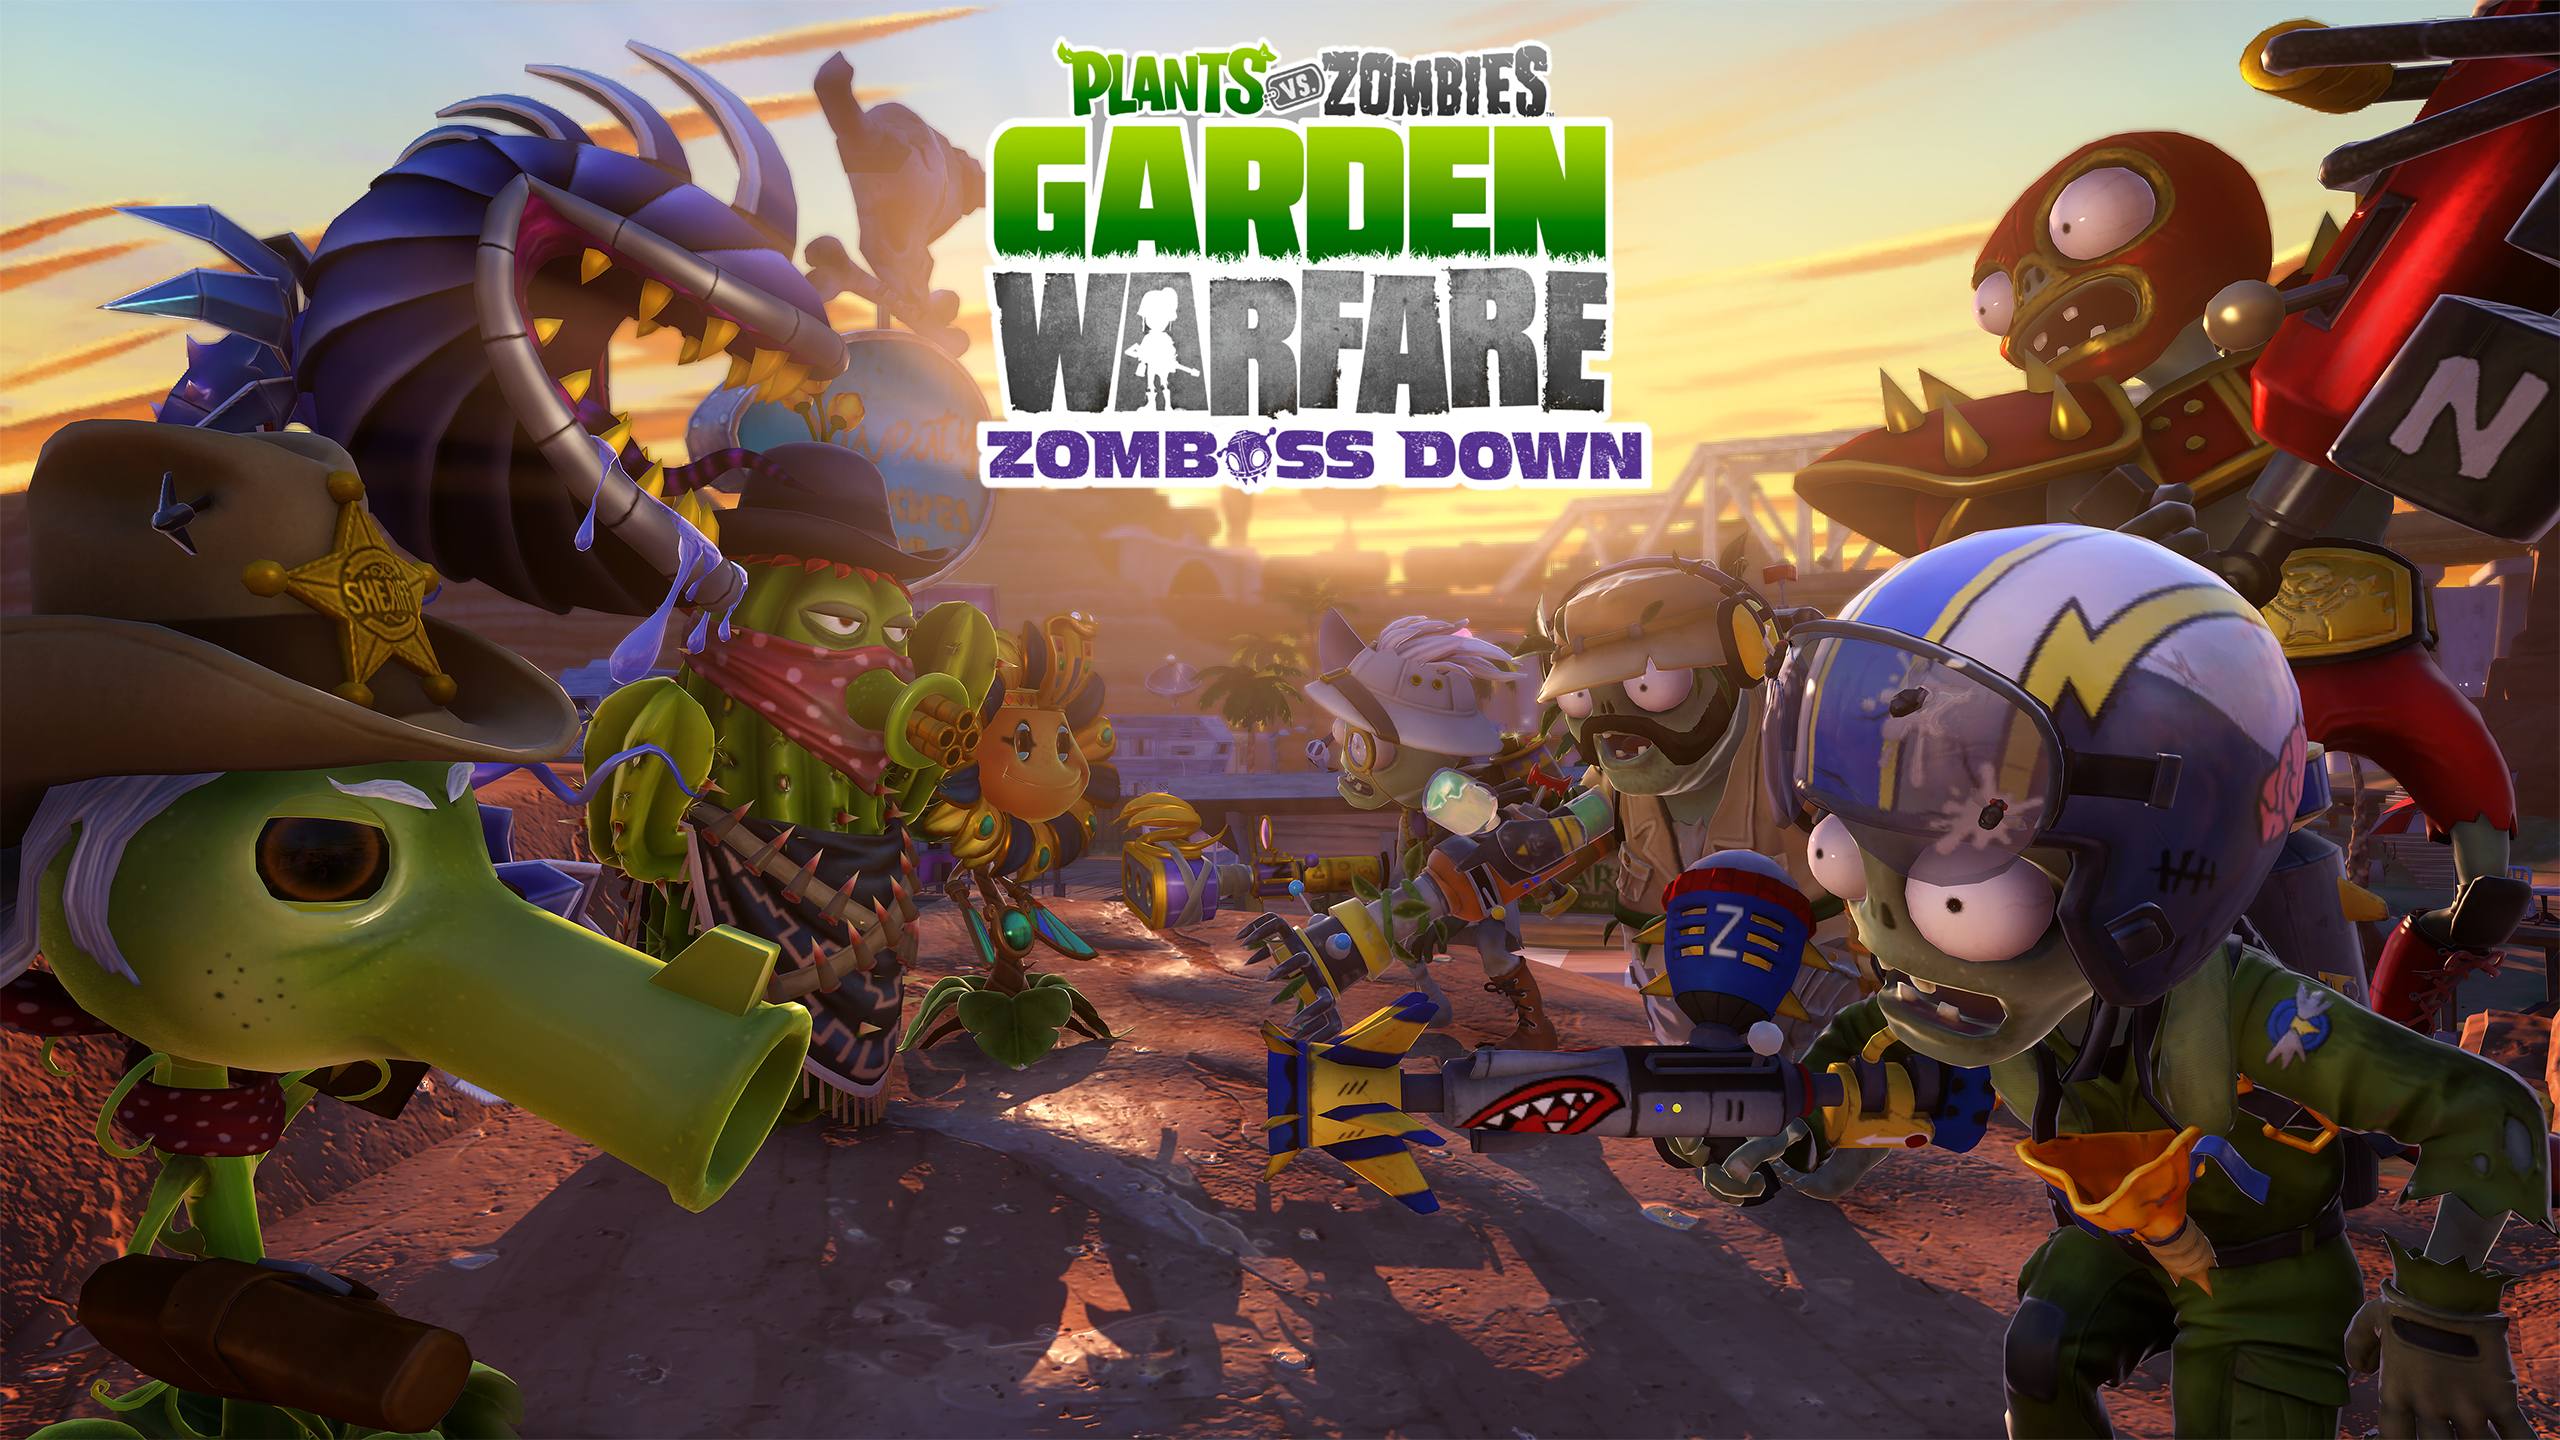 Plants Vs. Zombies: Garden Warfare Zomboss Down DLC Sprouts Up Today